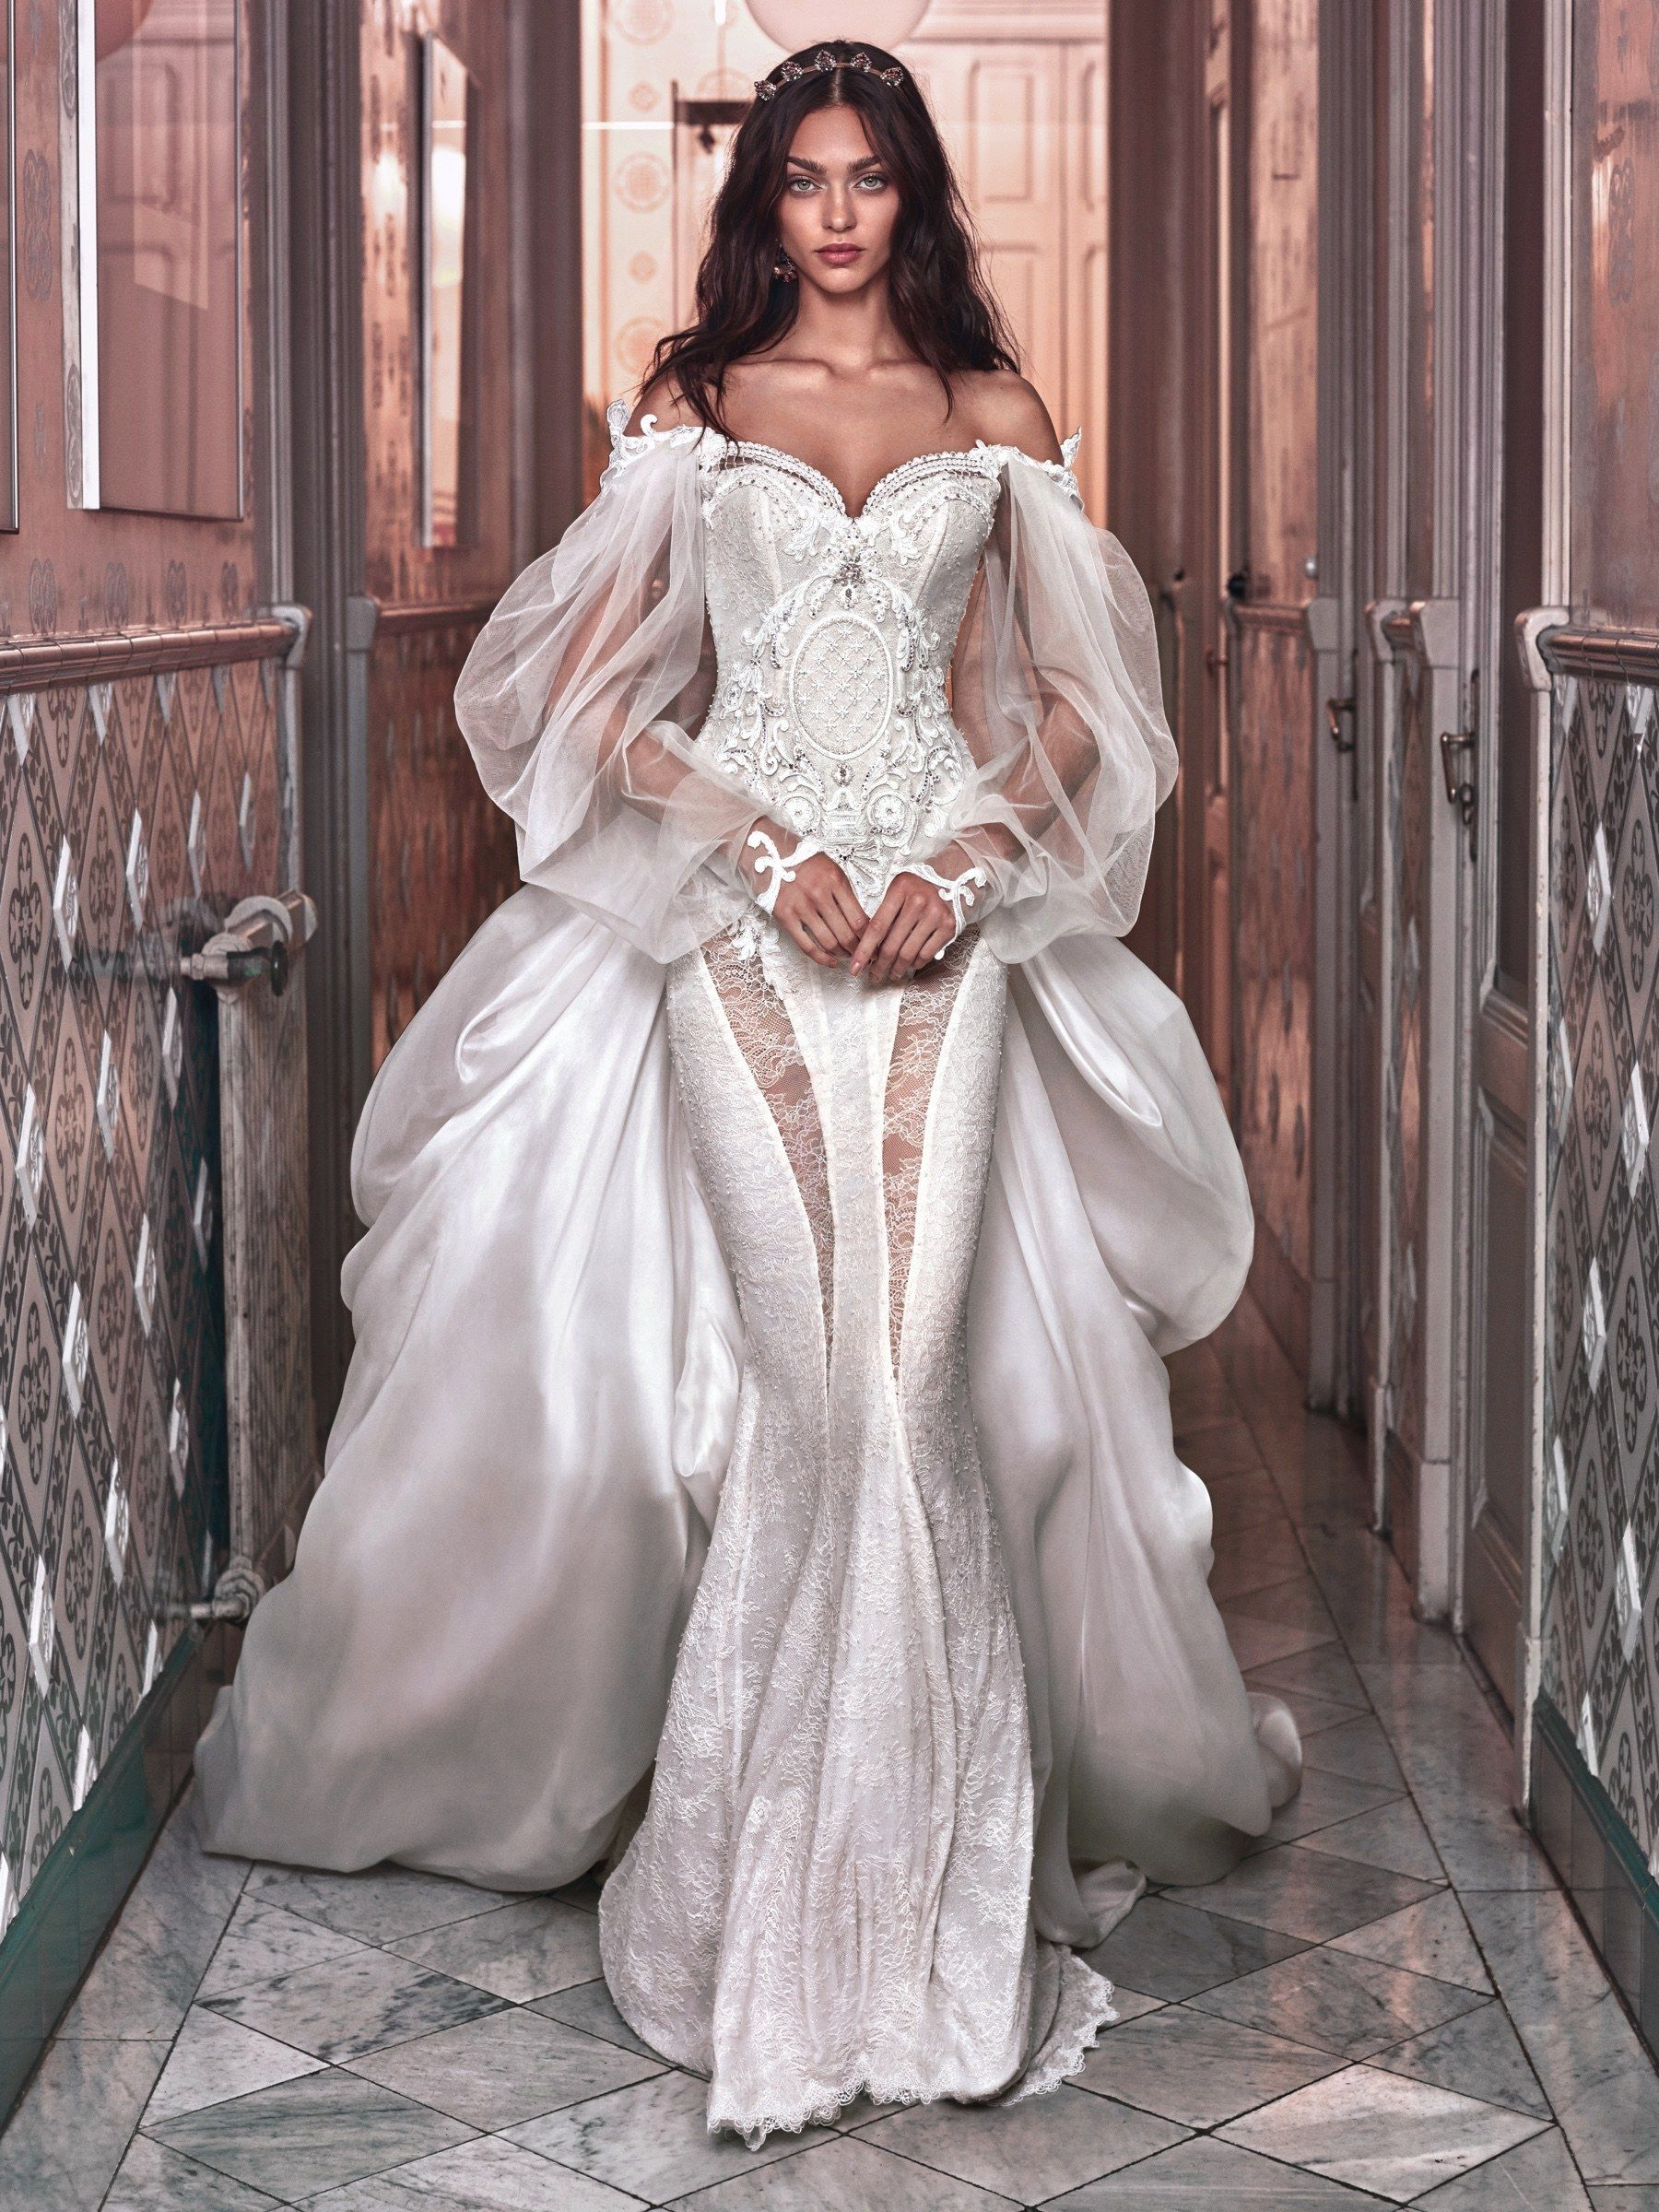 This Is the $12,000 Wedding Dress Beyoncé Wore to Renew Her Vows to ...